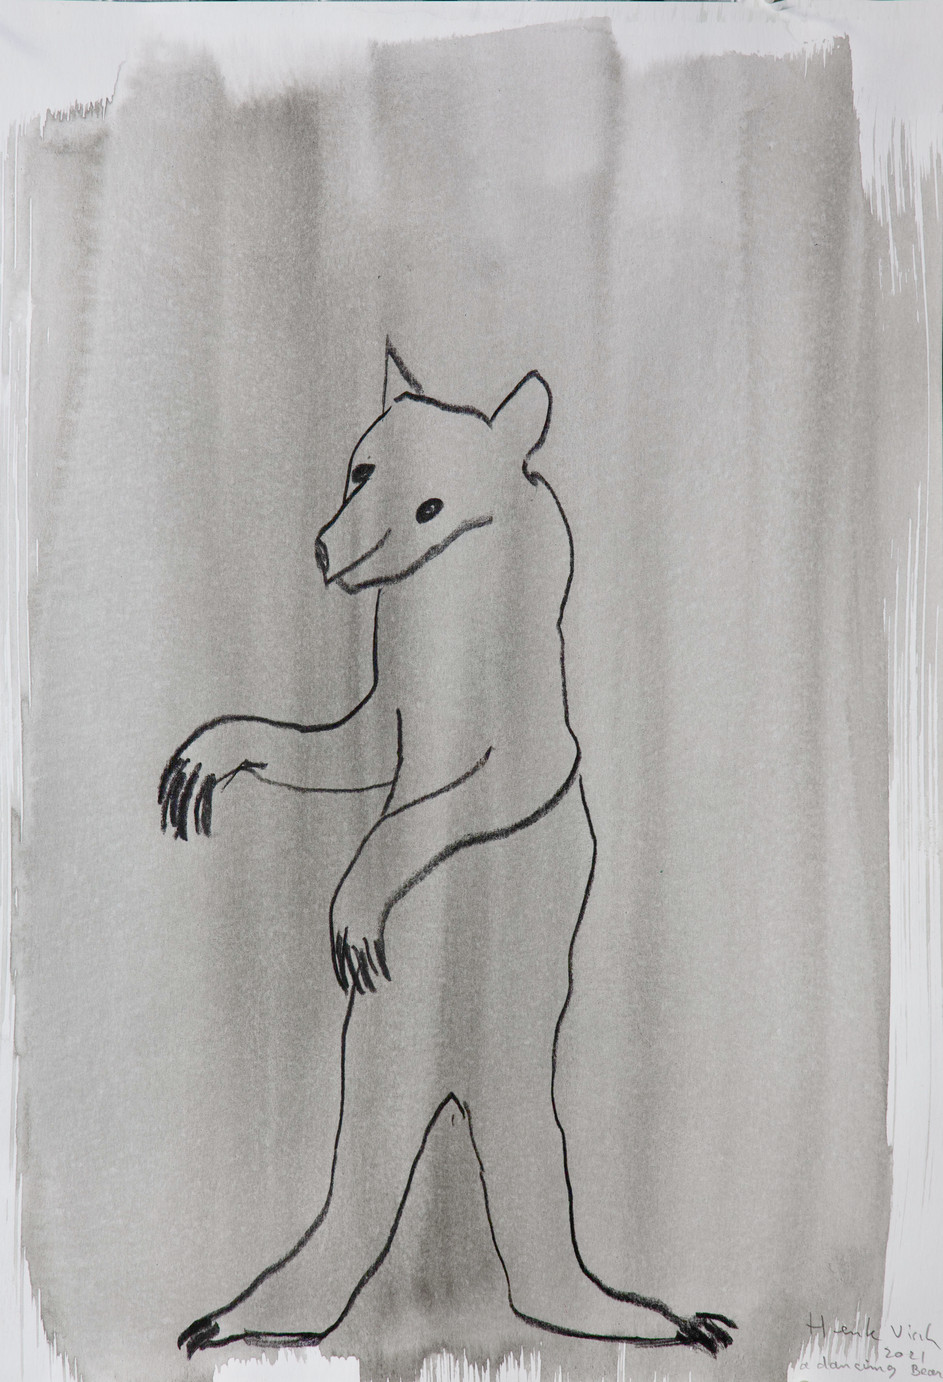 HENK VISCH A dancing bear, 2021 watercolor and pencil on paper 42 x 29,7 cm